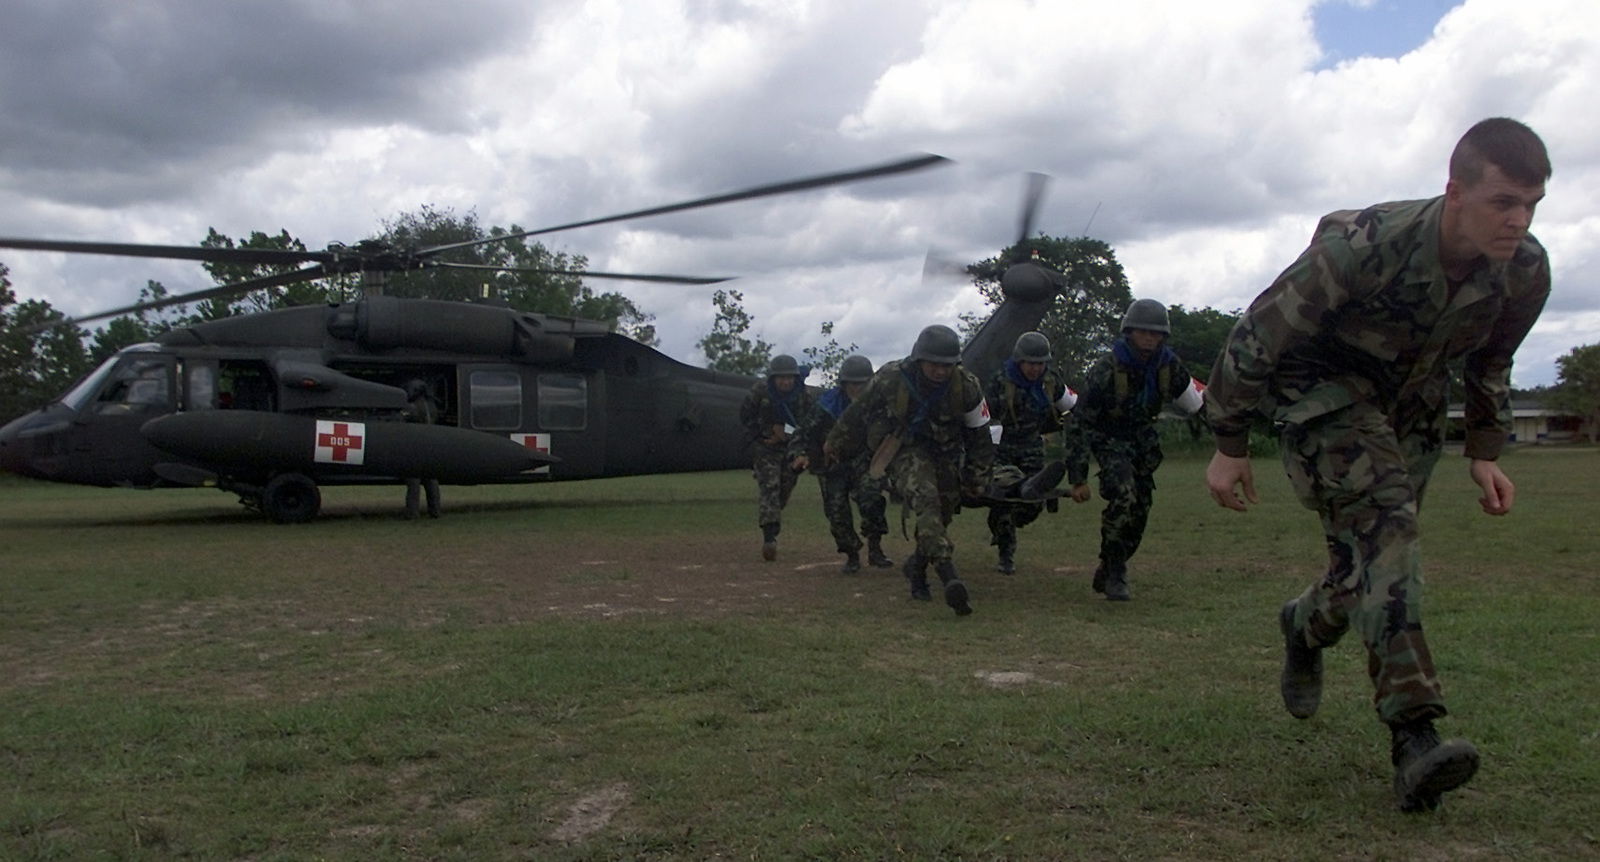 A team of Royal Thai Army Medical Evacuation (MEDEVAC) students follow an USA MEDEVAC Instructor after removing a litter patient from an USA UH-60Q Blackhawk MEDEVAC helicopter during medical evacuation training conducted during Exercise COBRA GOLD 2000